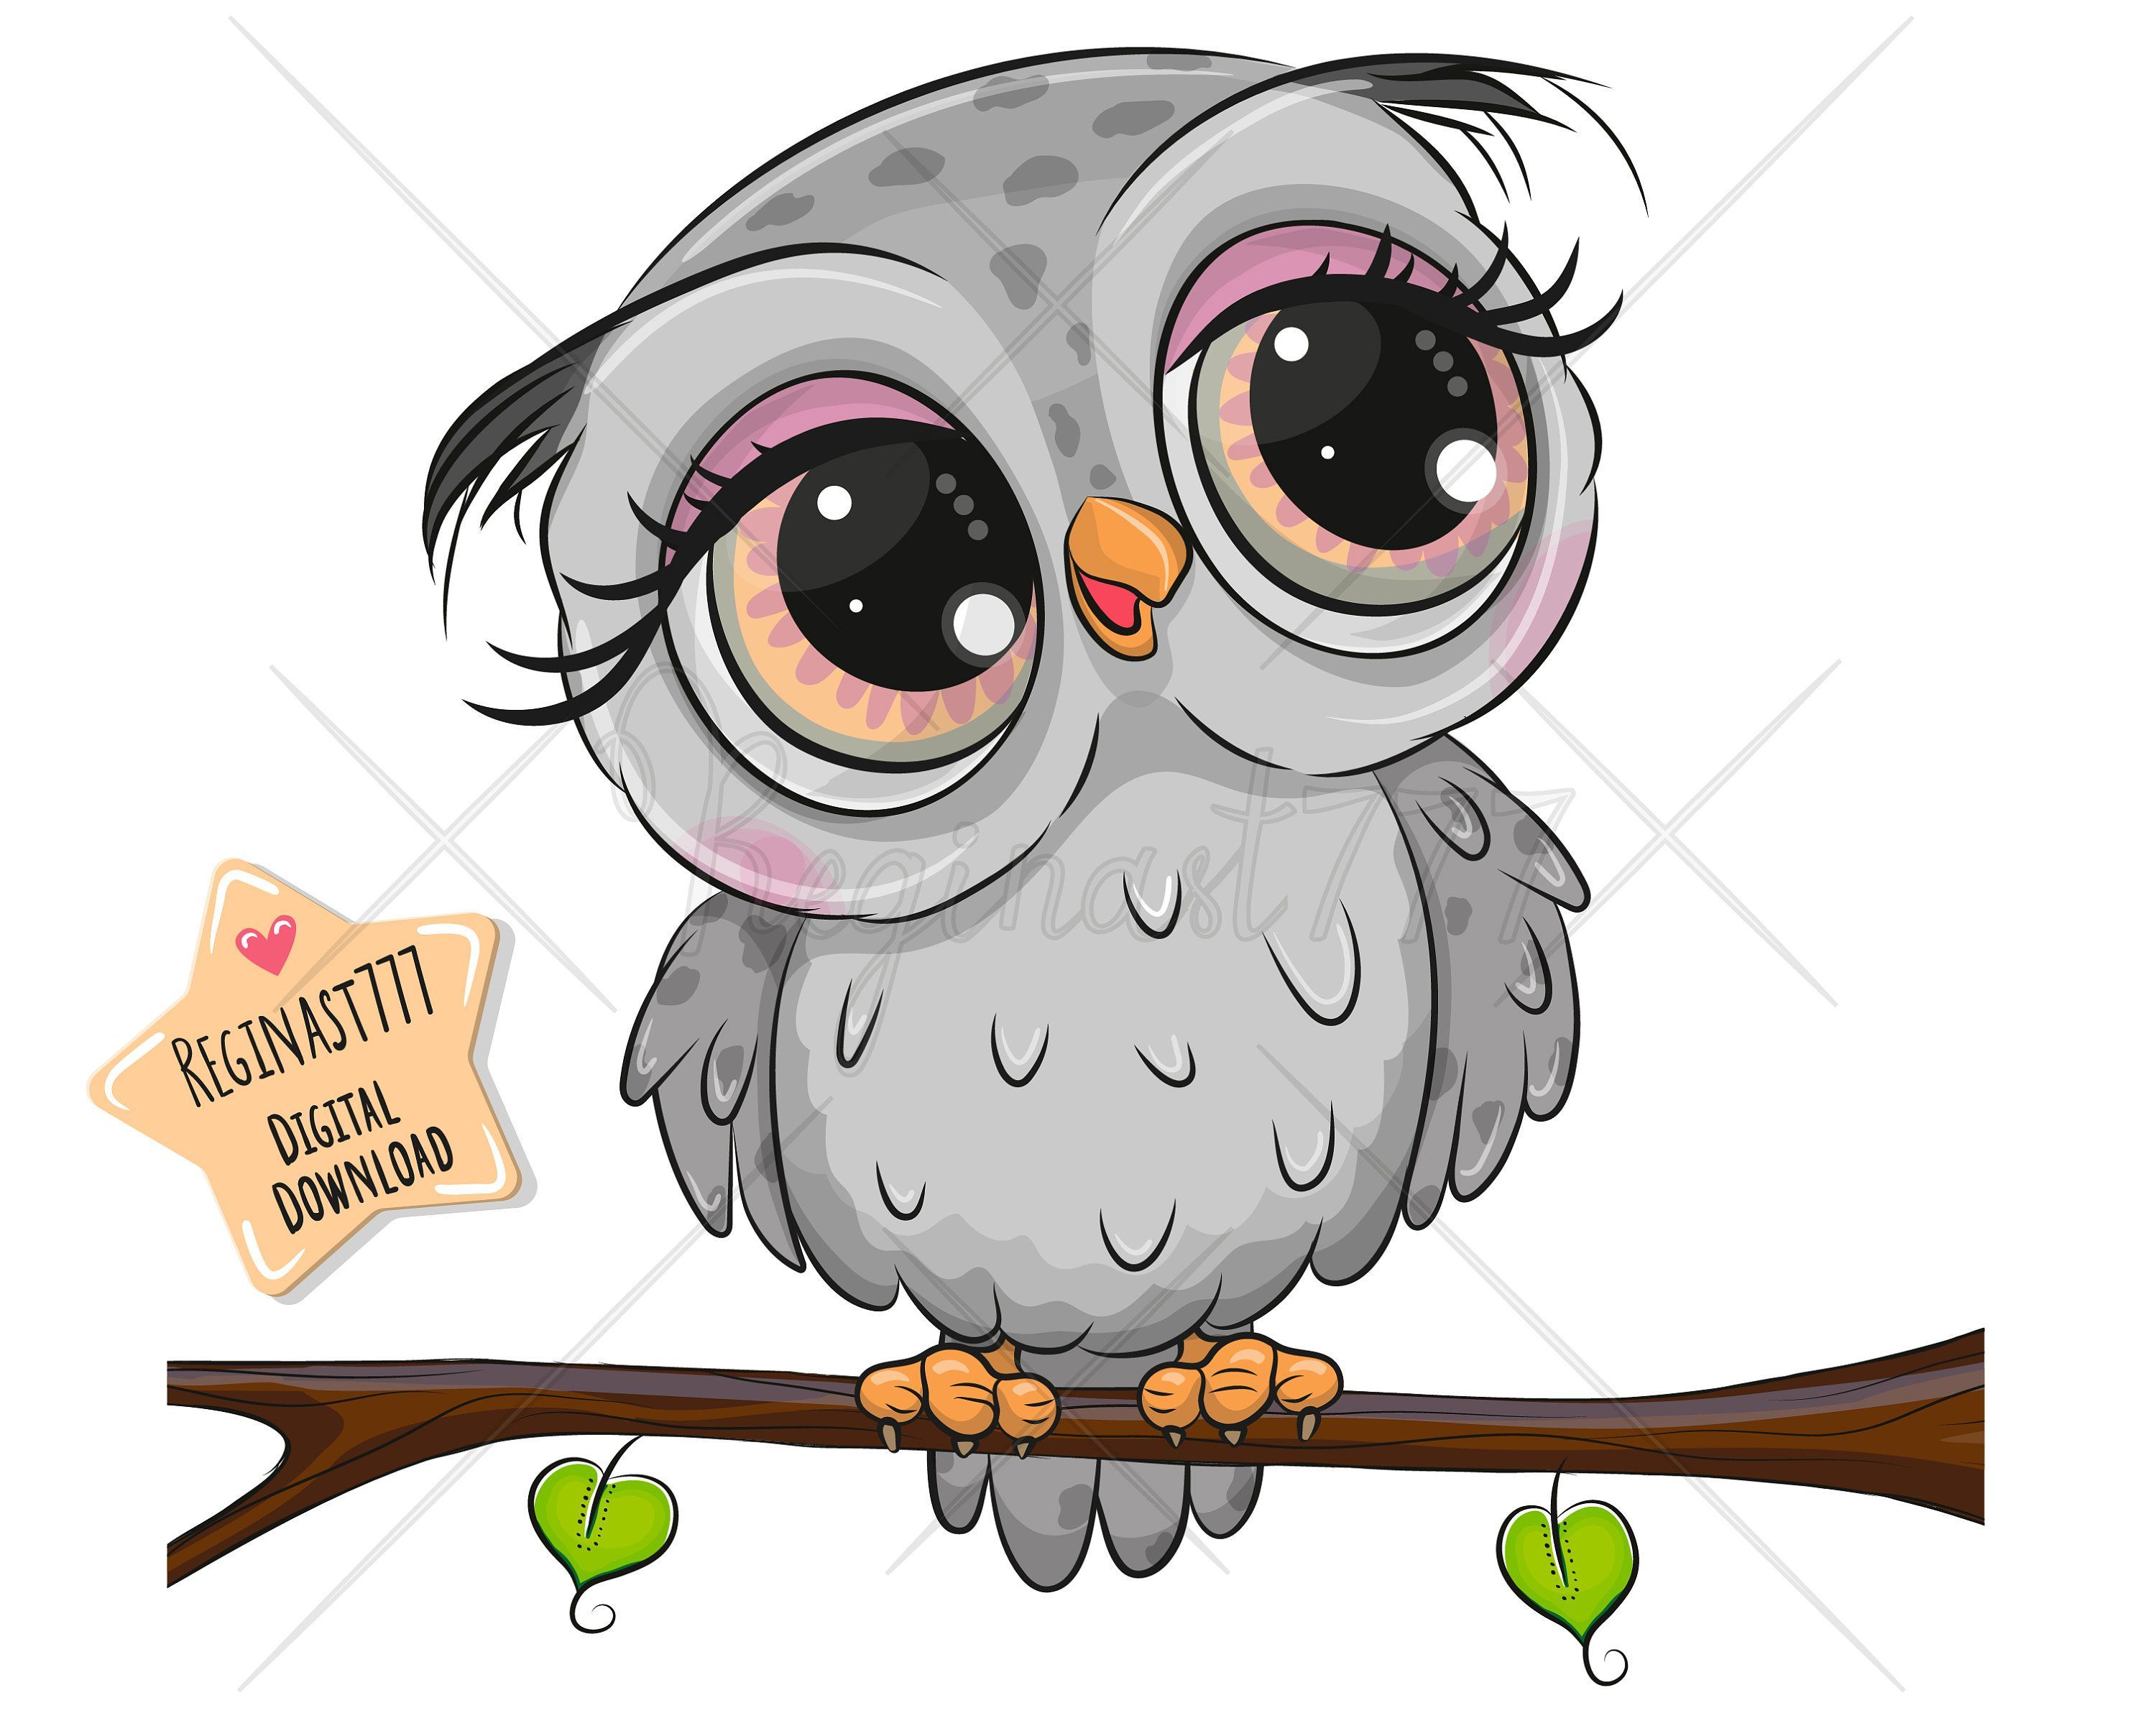 Cute Owl Png Digital Download Clipart Adorable Graphics Etsy In 2021 Cute Owl Cartoon Cute Owls Wallpaper Baby Animal Drawings